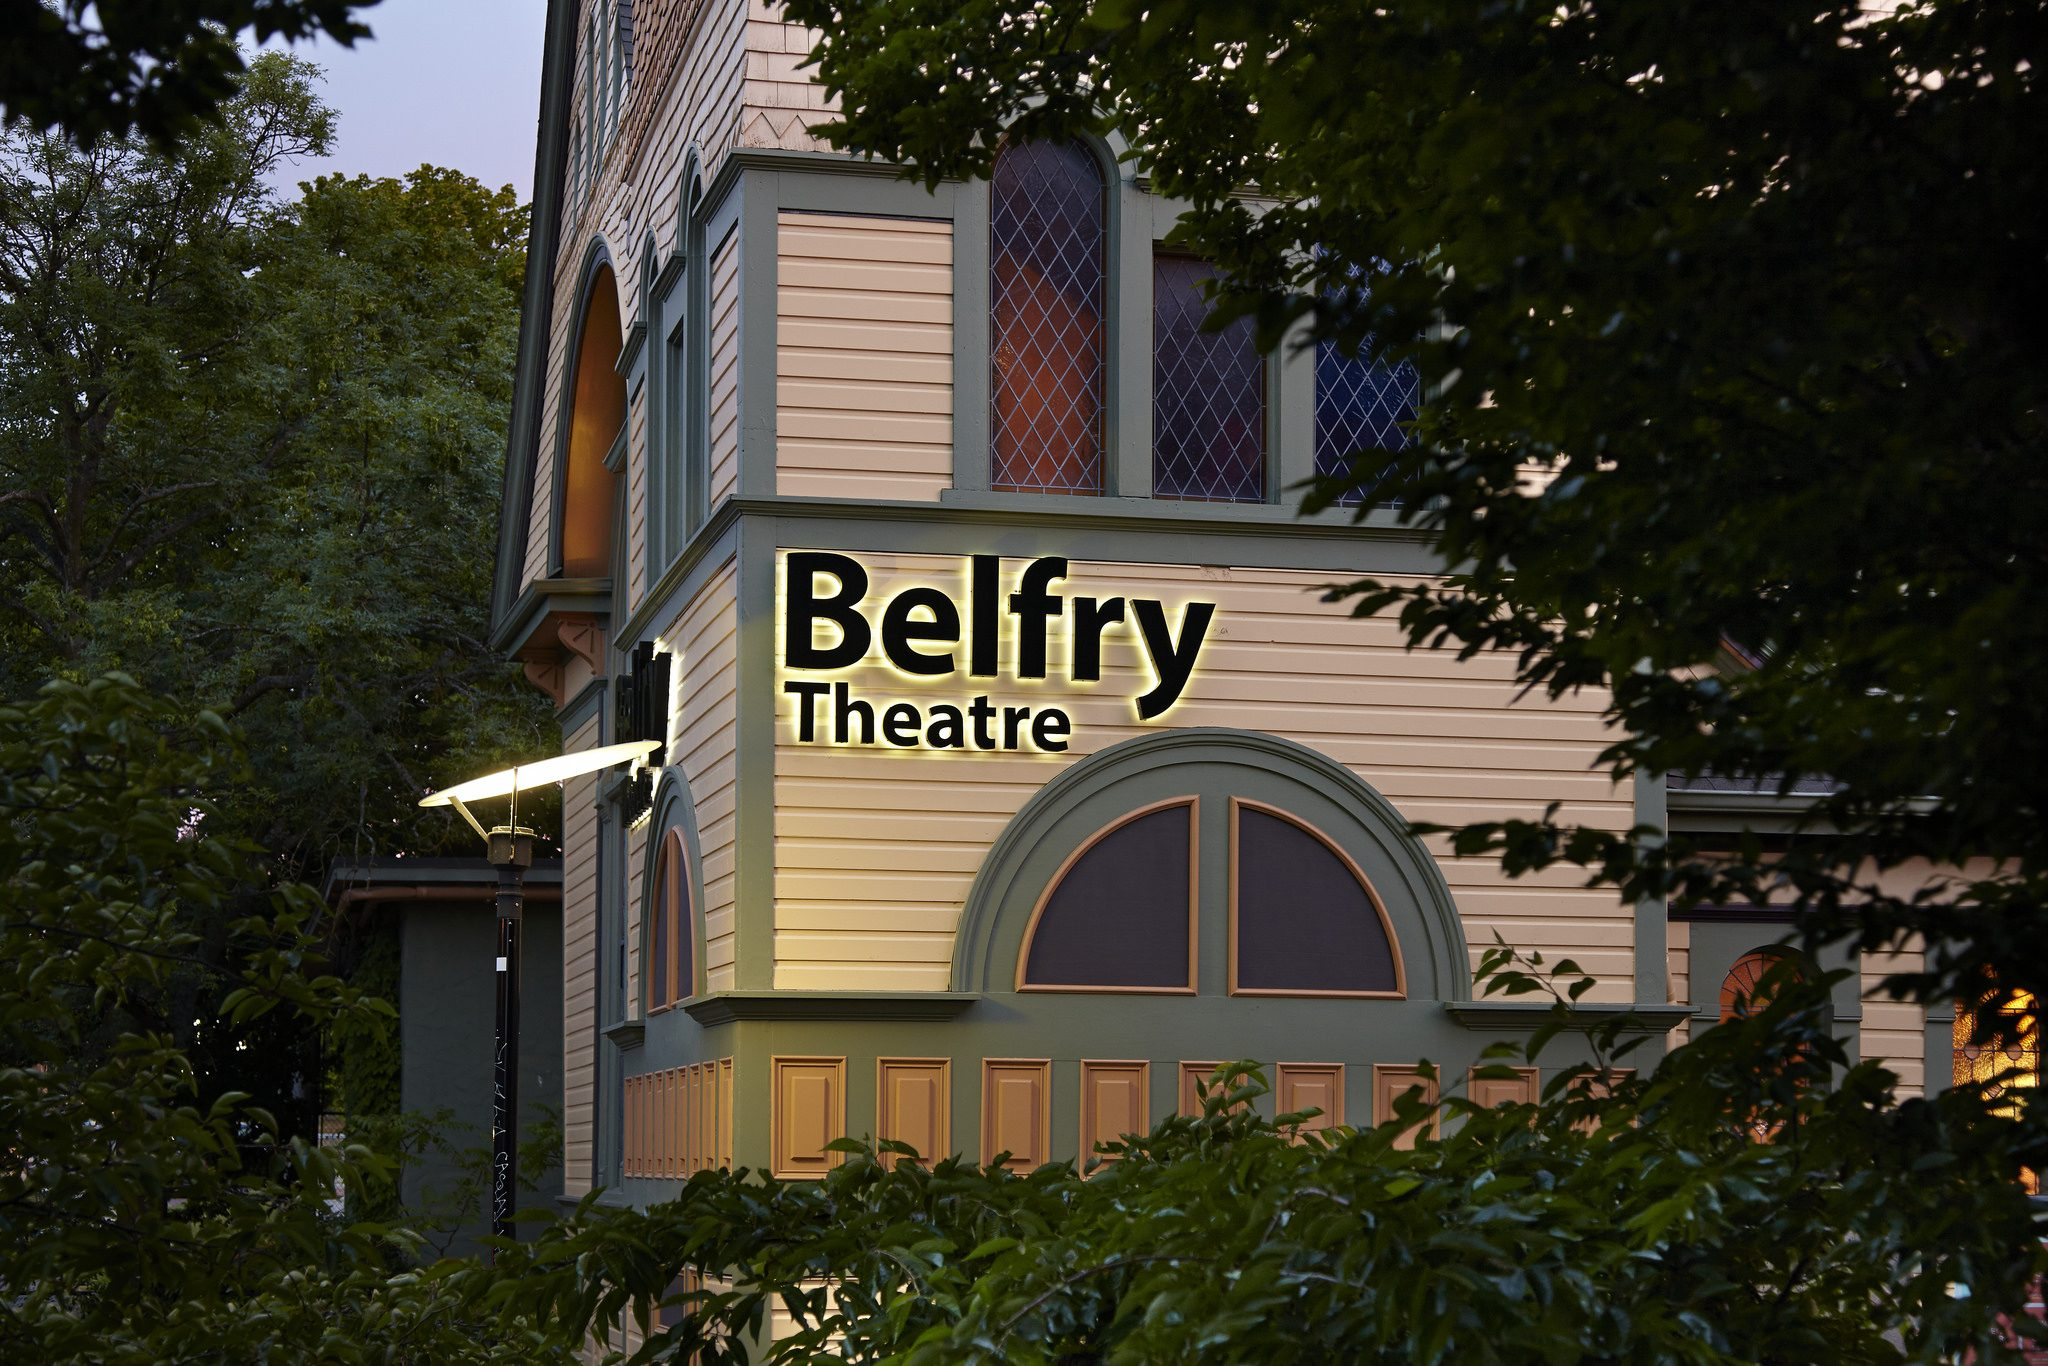 Belfry Theatre statement on COVID-19